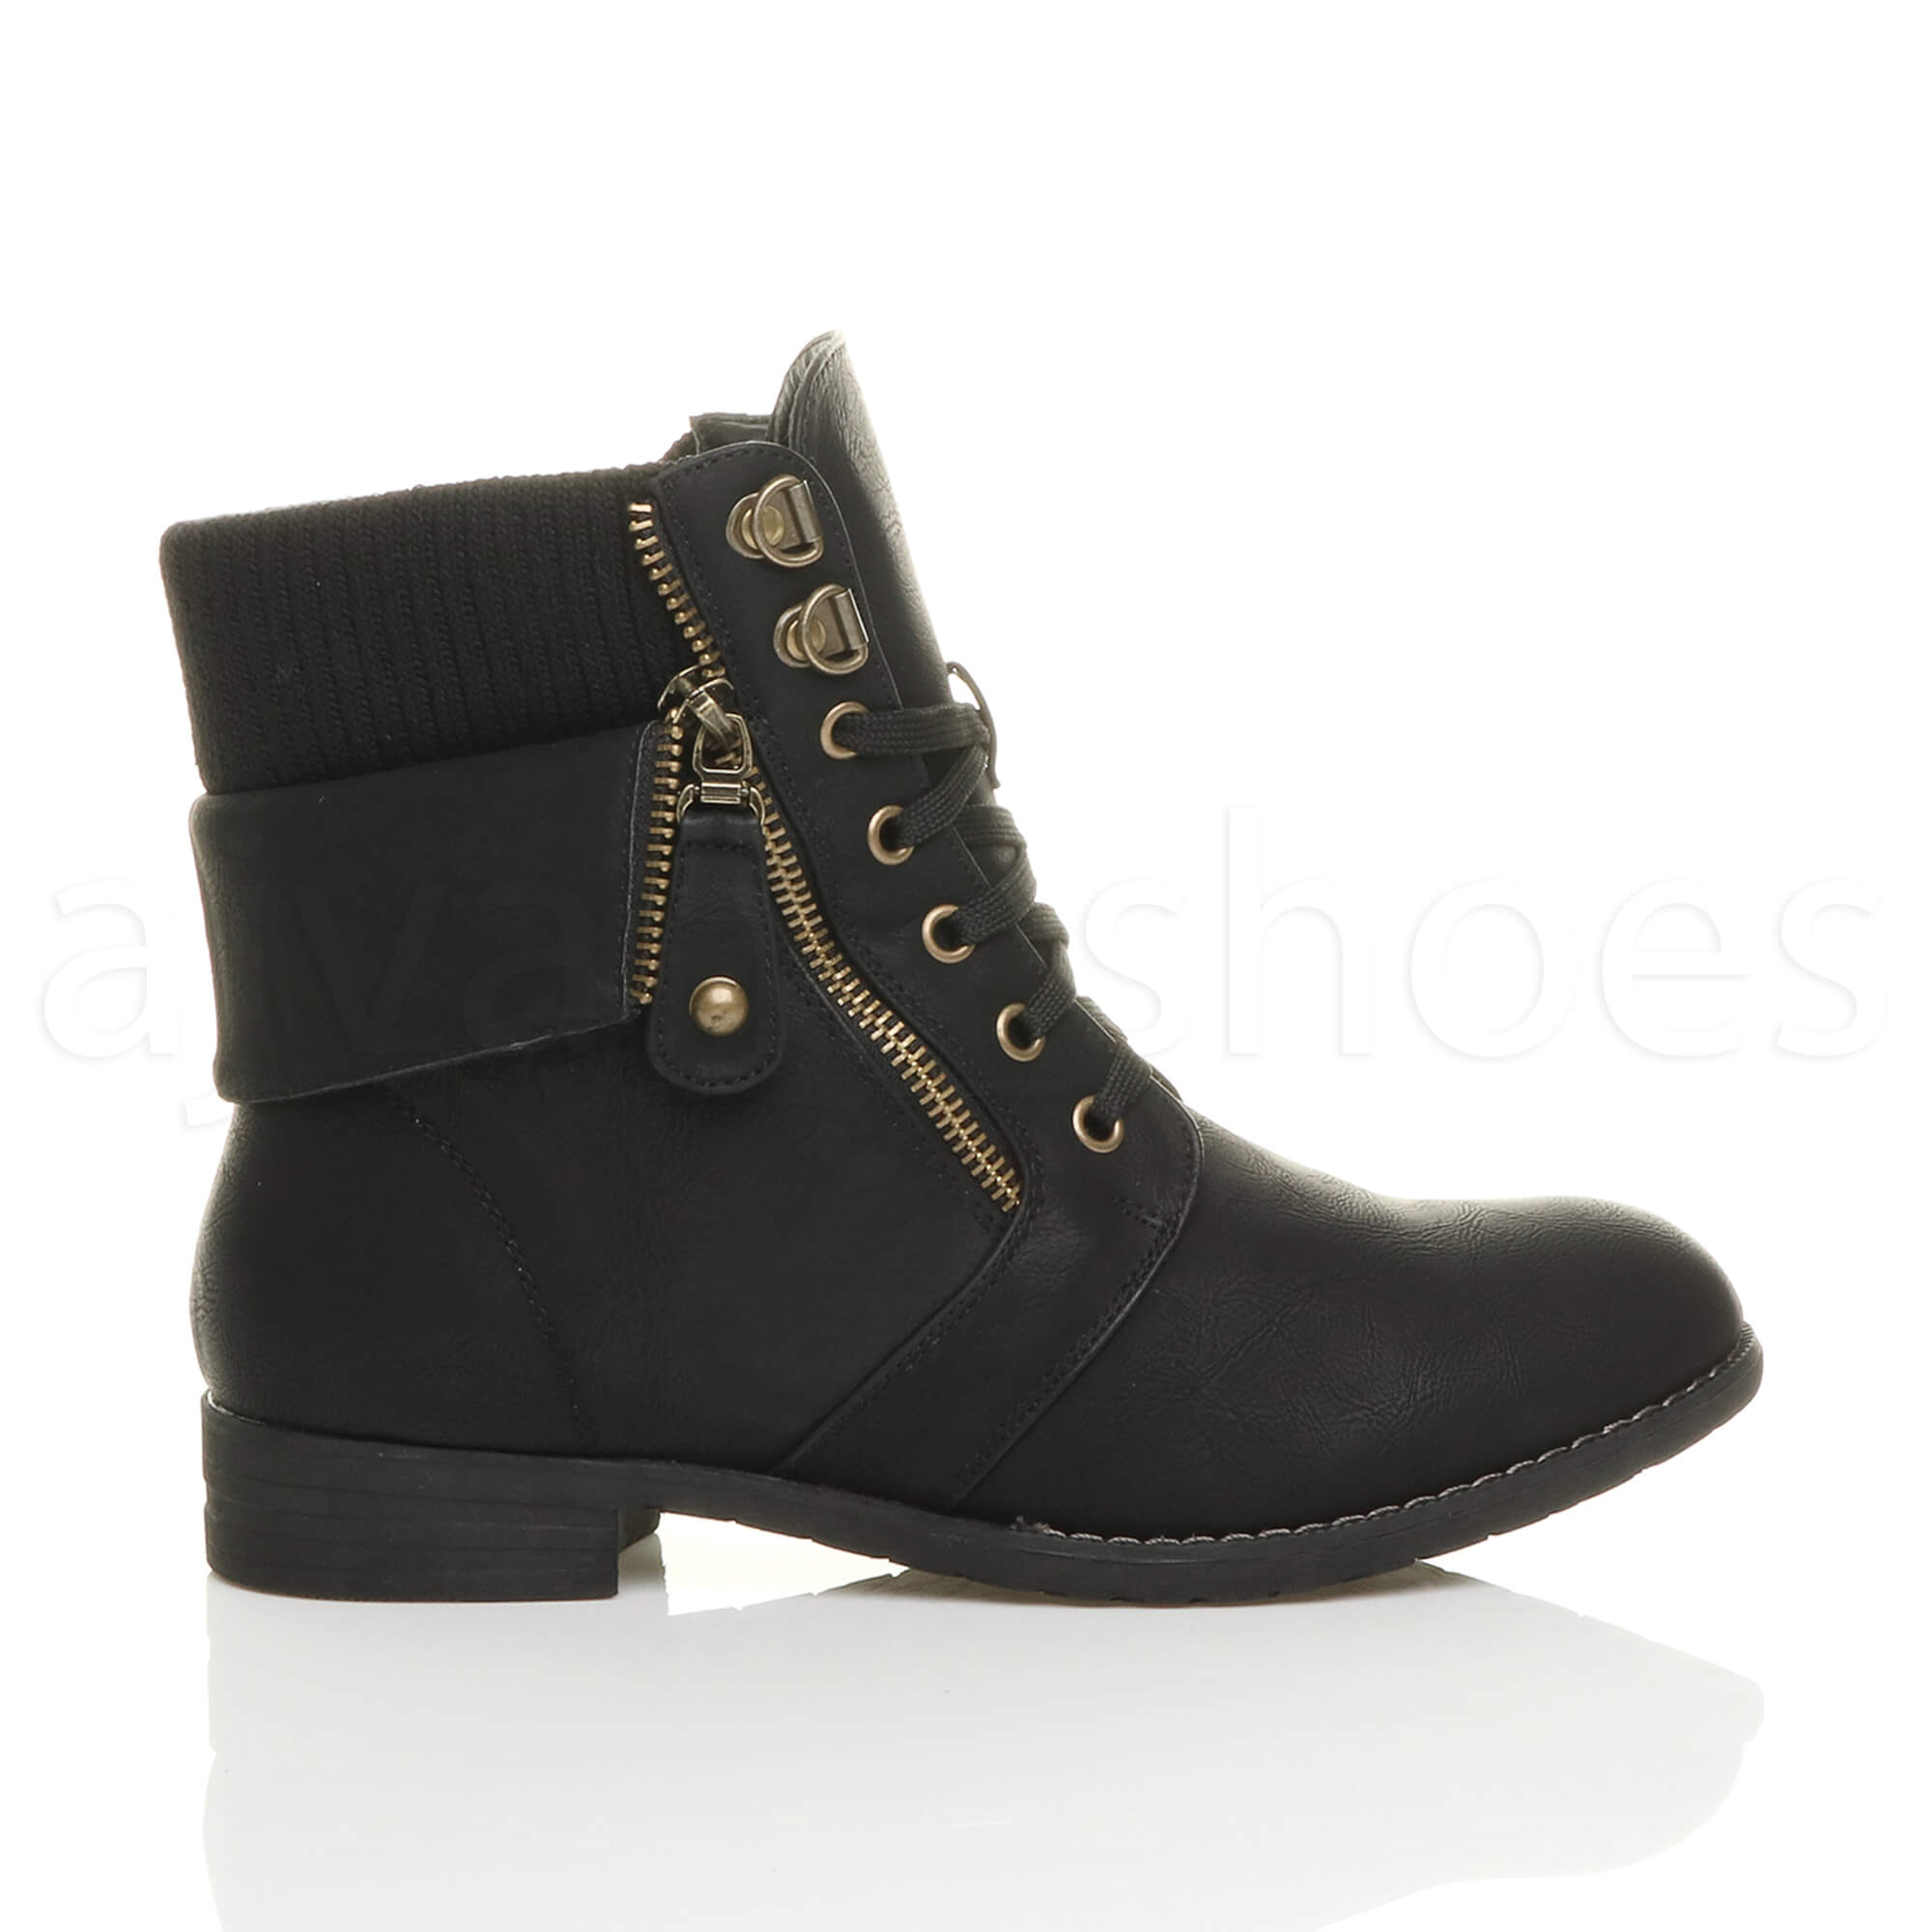 womens low heel lace up knitted cuff zip biker combat army